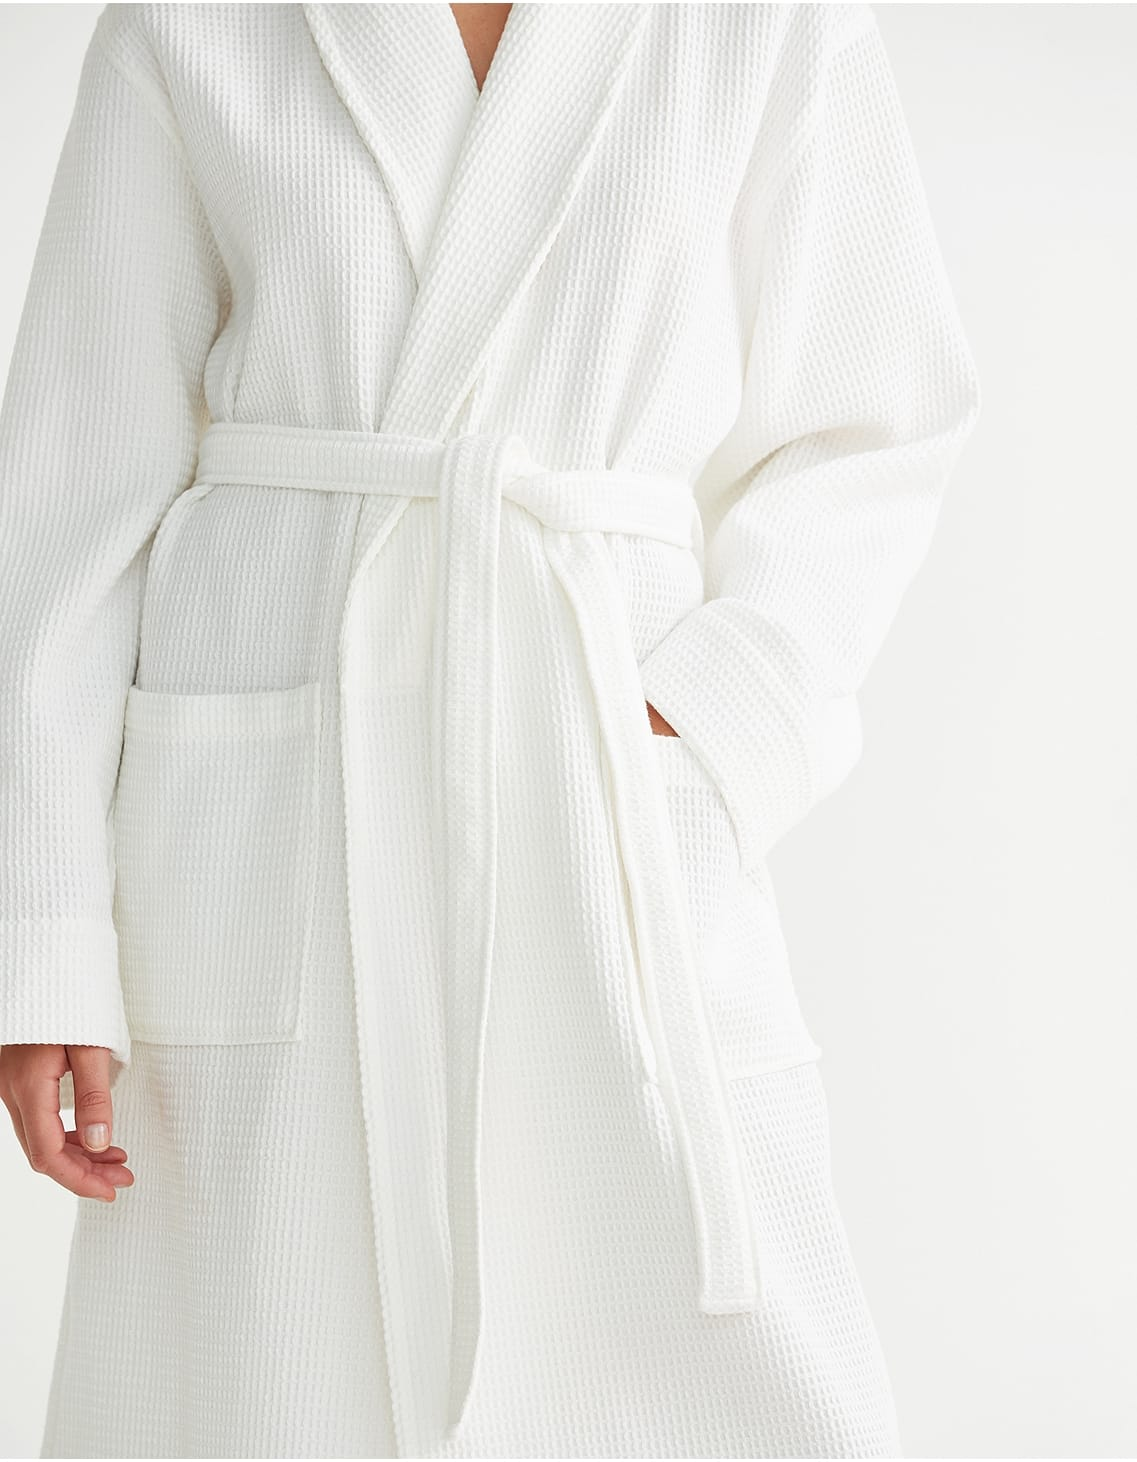 Impress the guests, unisex white waffle robe by White Company